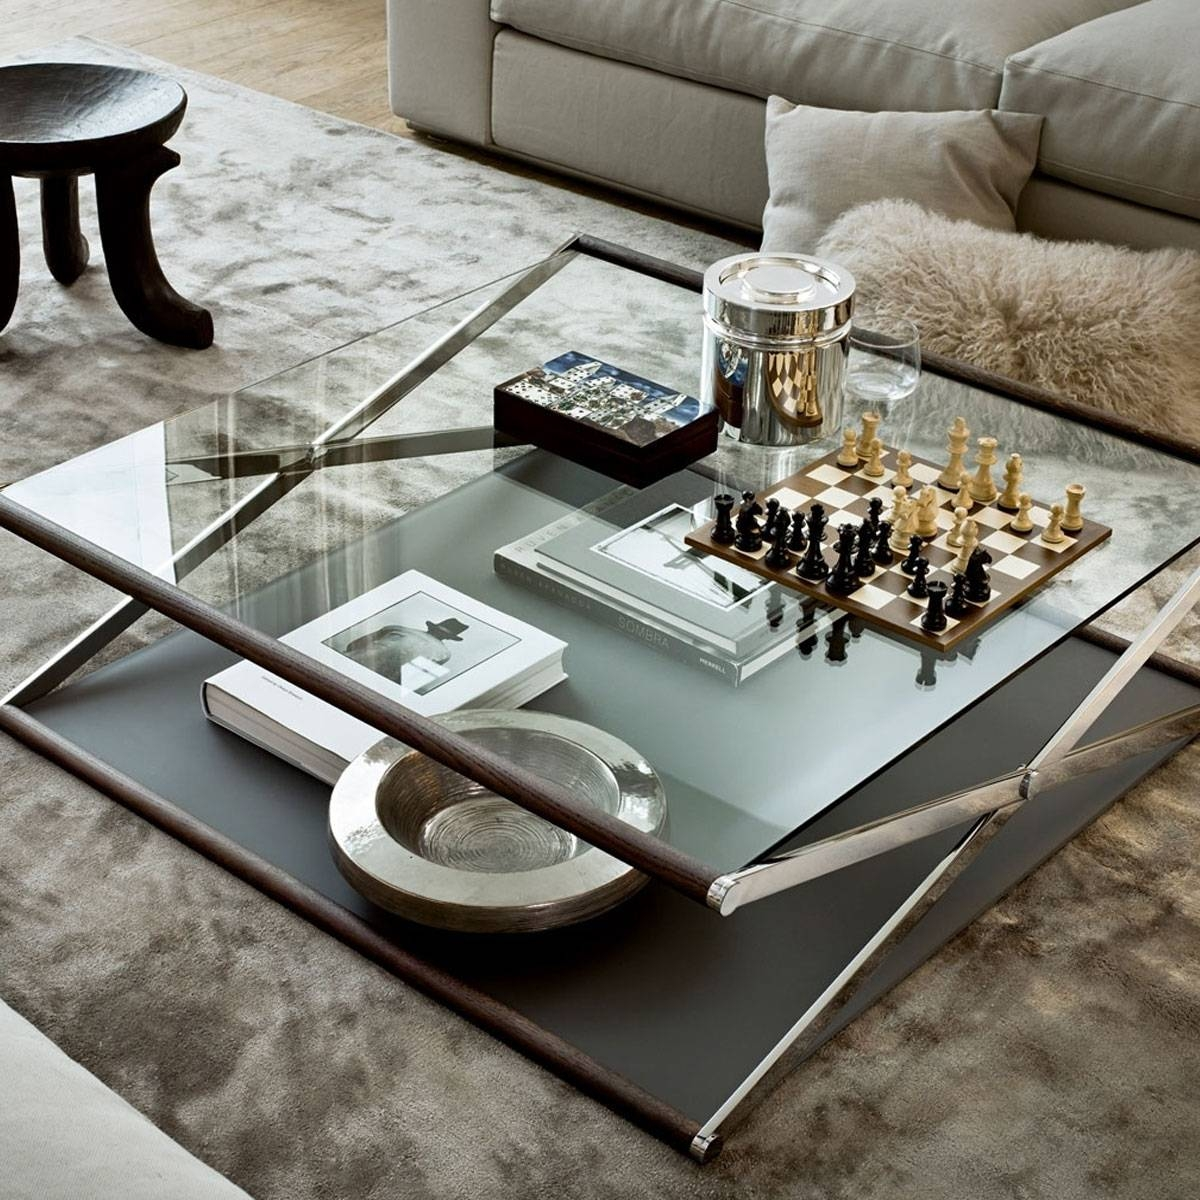 Coffee Table: Stunning Glass And Metal Coffee Table Design Ideas intended for Glass And Metal Coffee Tables (Image 10 of 30)